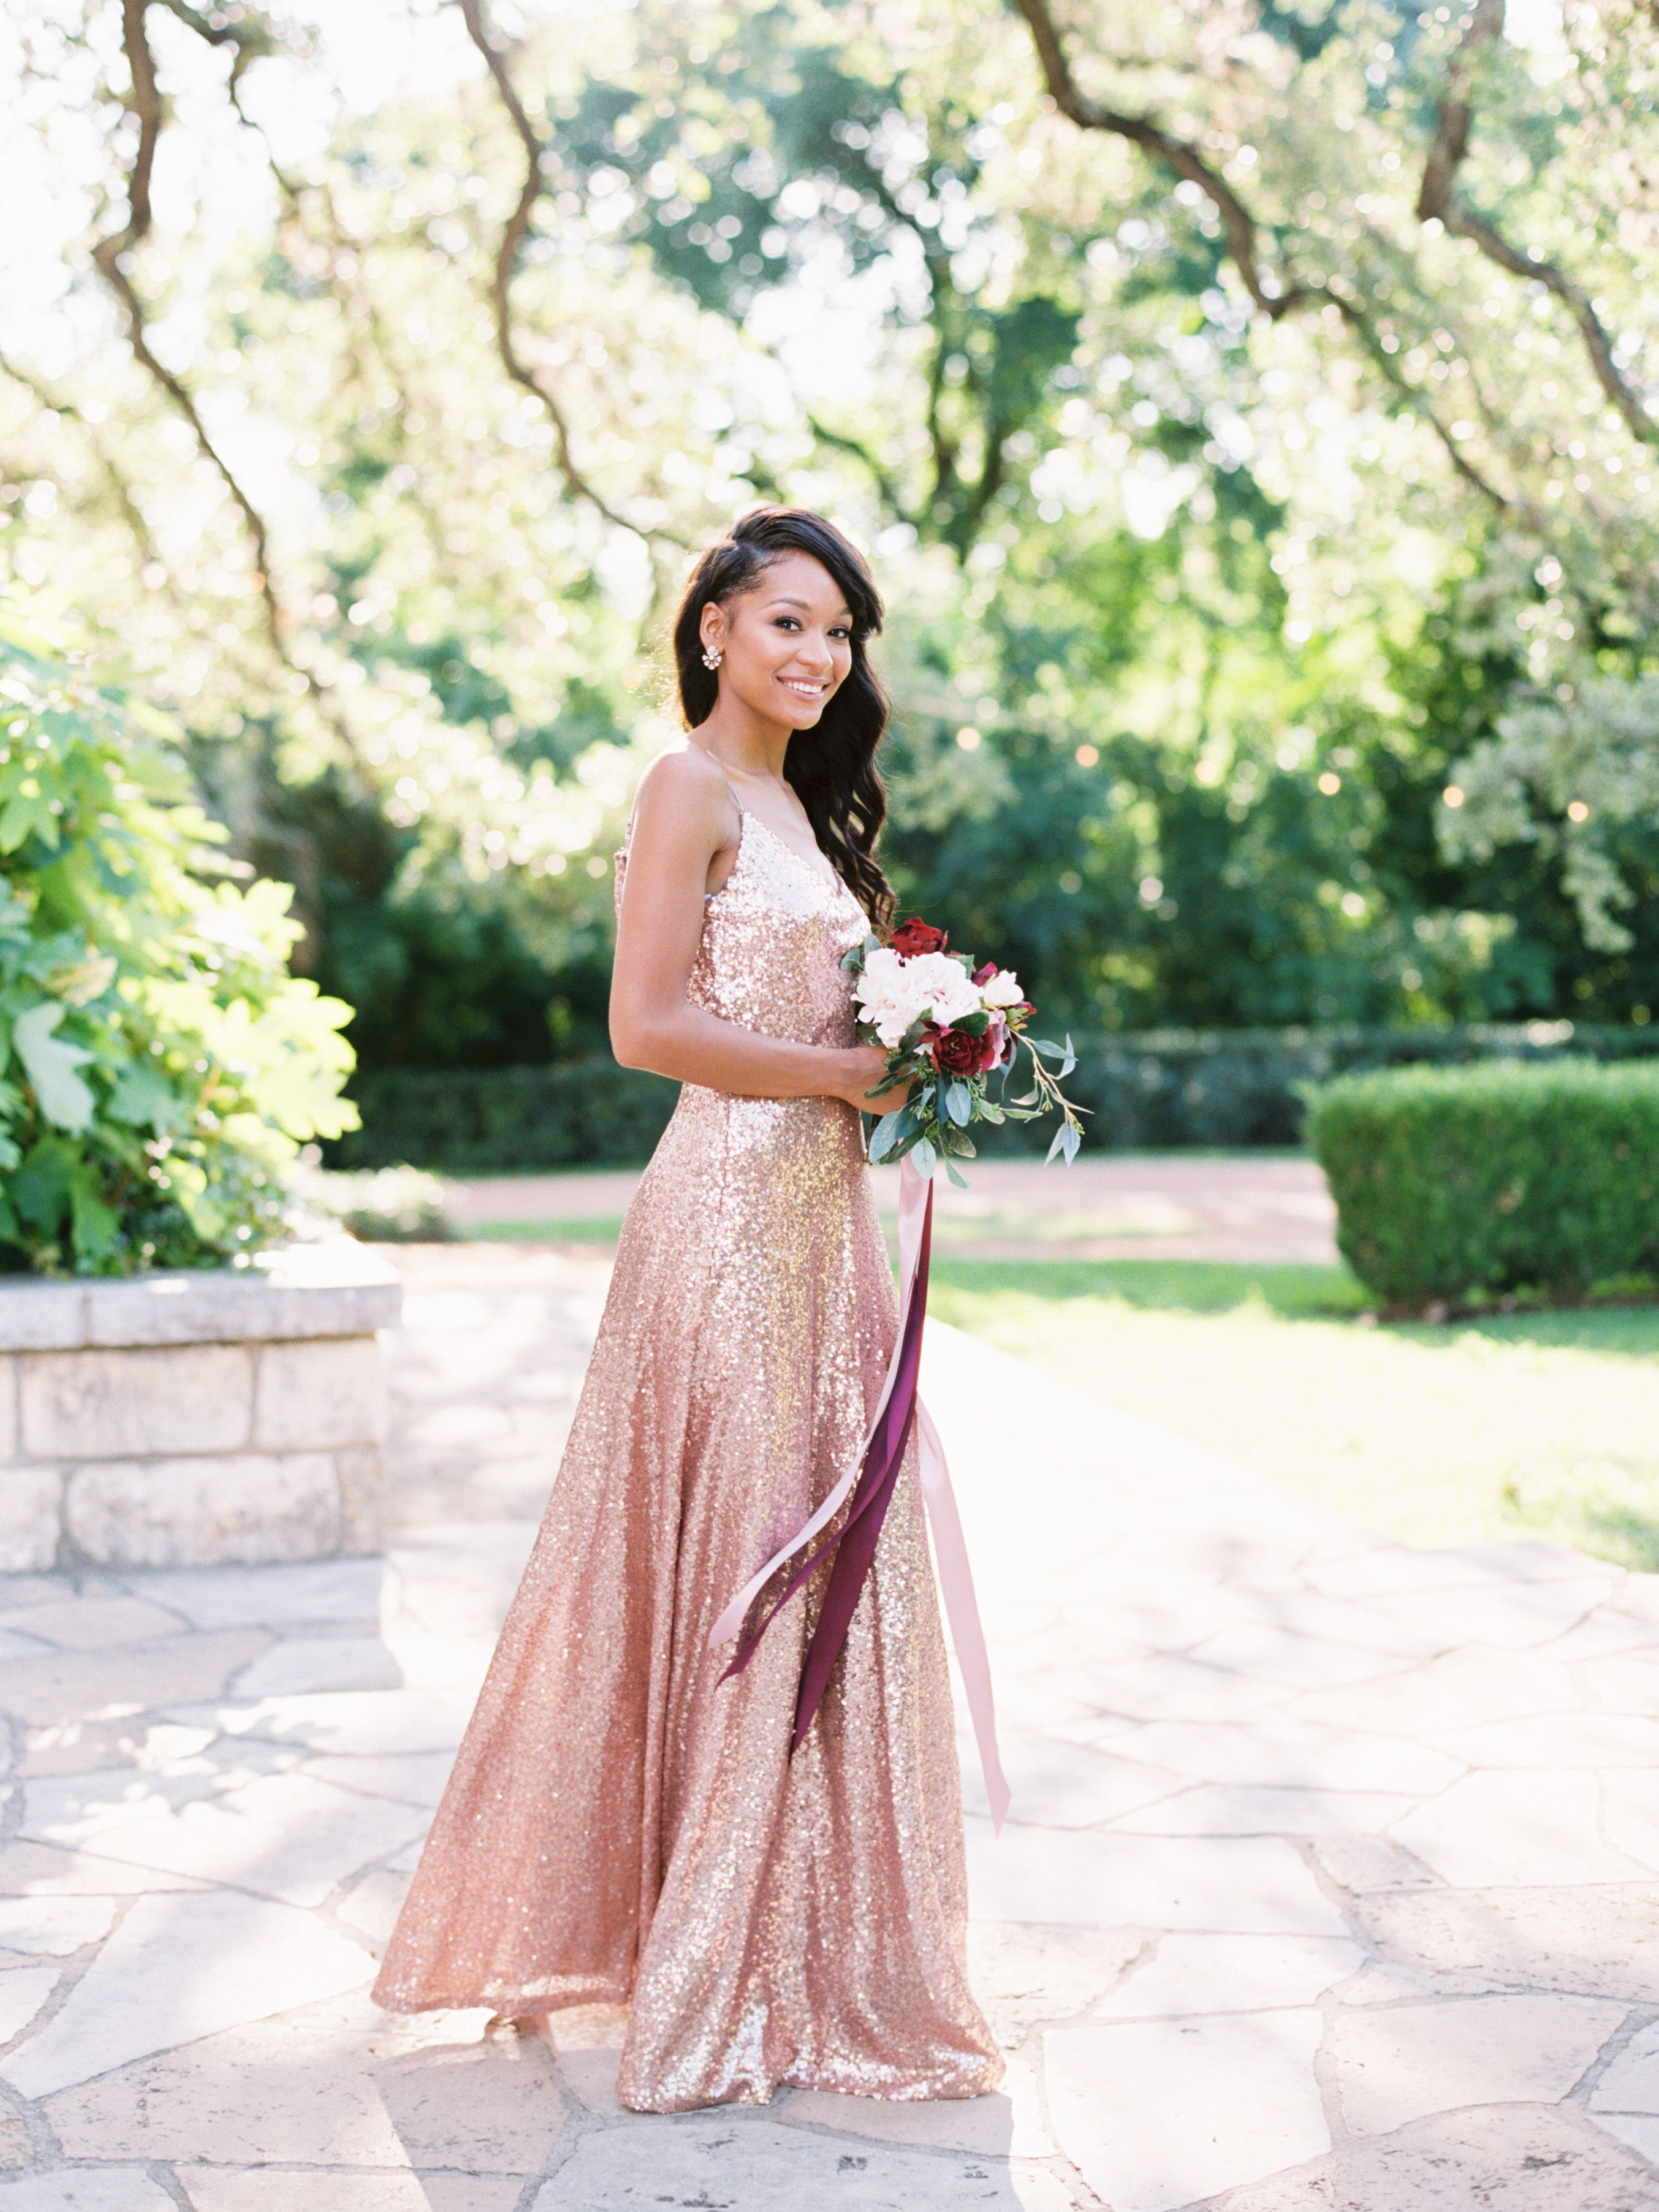 Have your bridesmaids make a statement this fall with beautiful rose